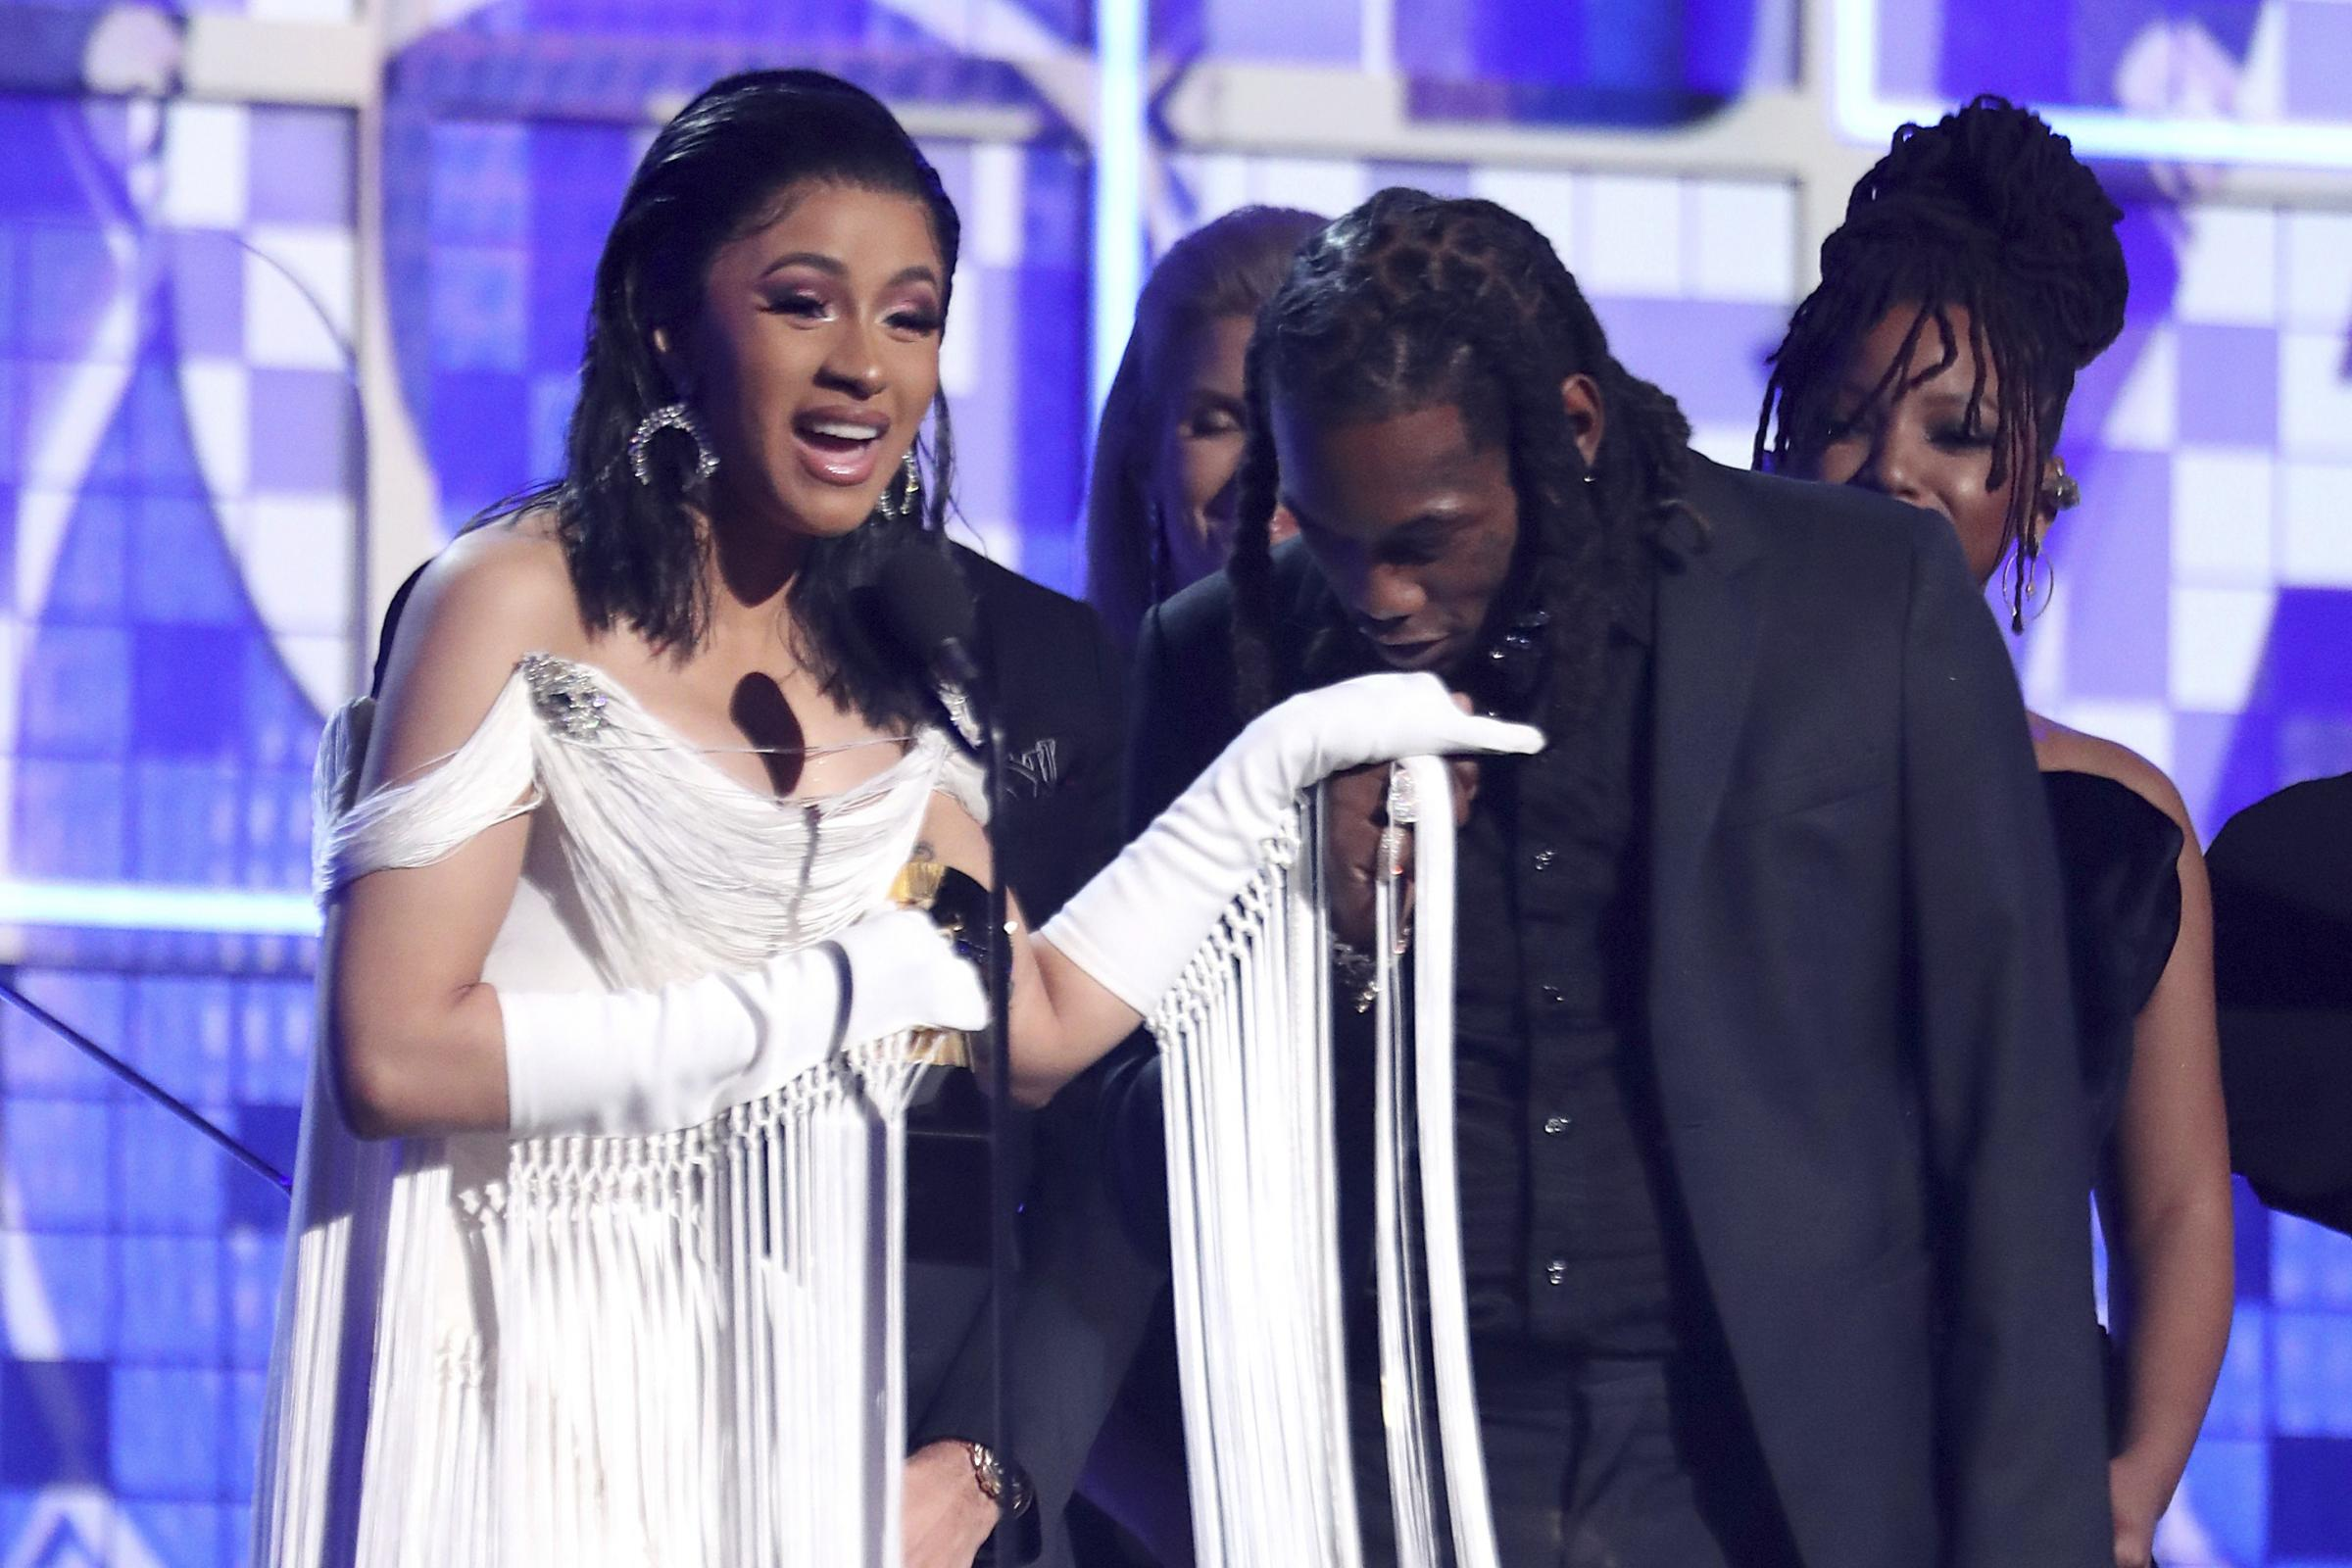 Cardi B accepts the award for best rap album as Offset kisses her hand